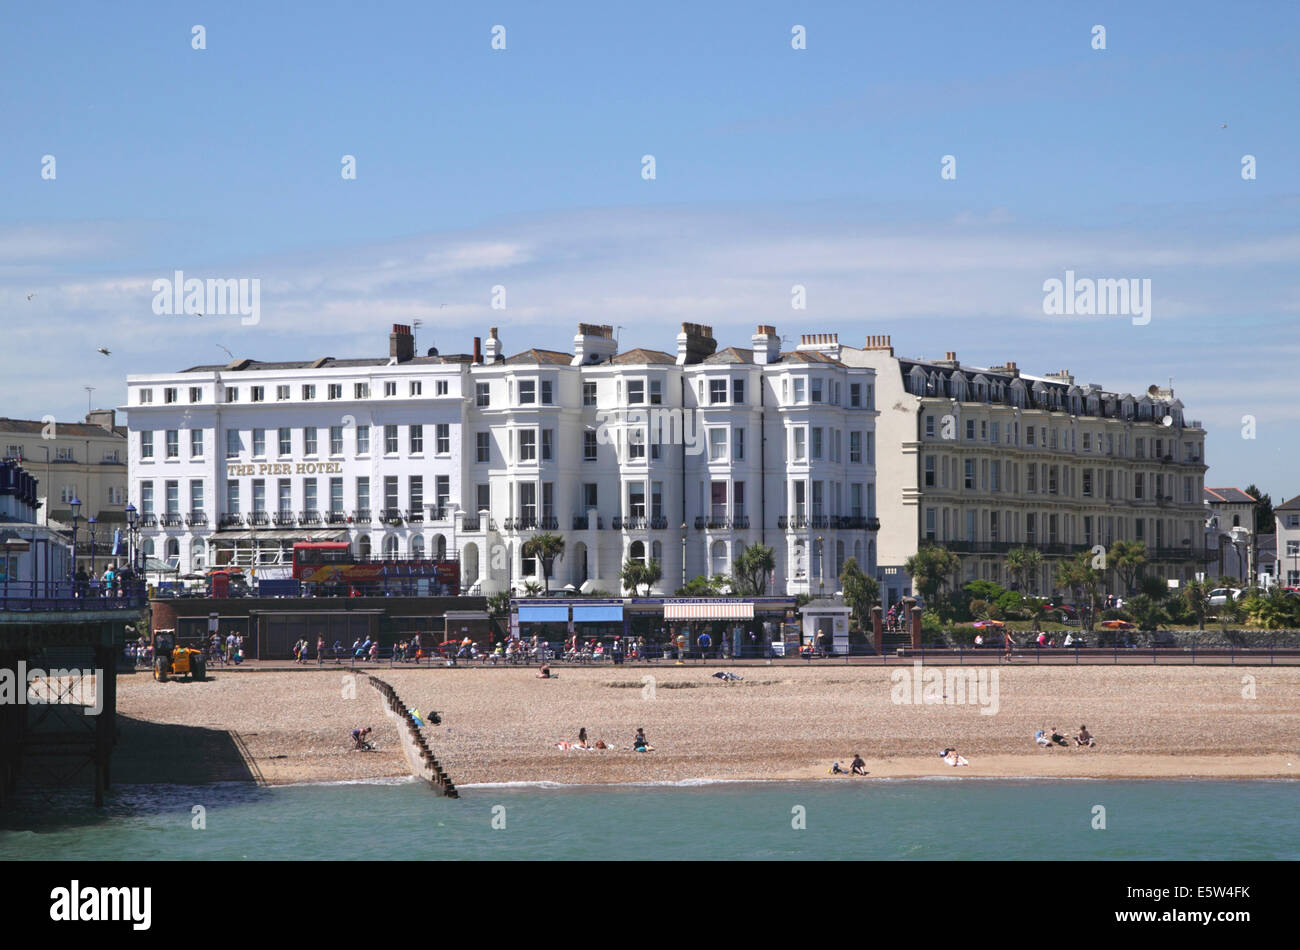 The Pier Hotel at Eastbourne seafront East Sussex - Stock Image